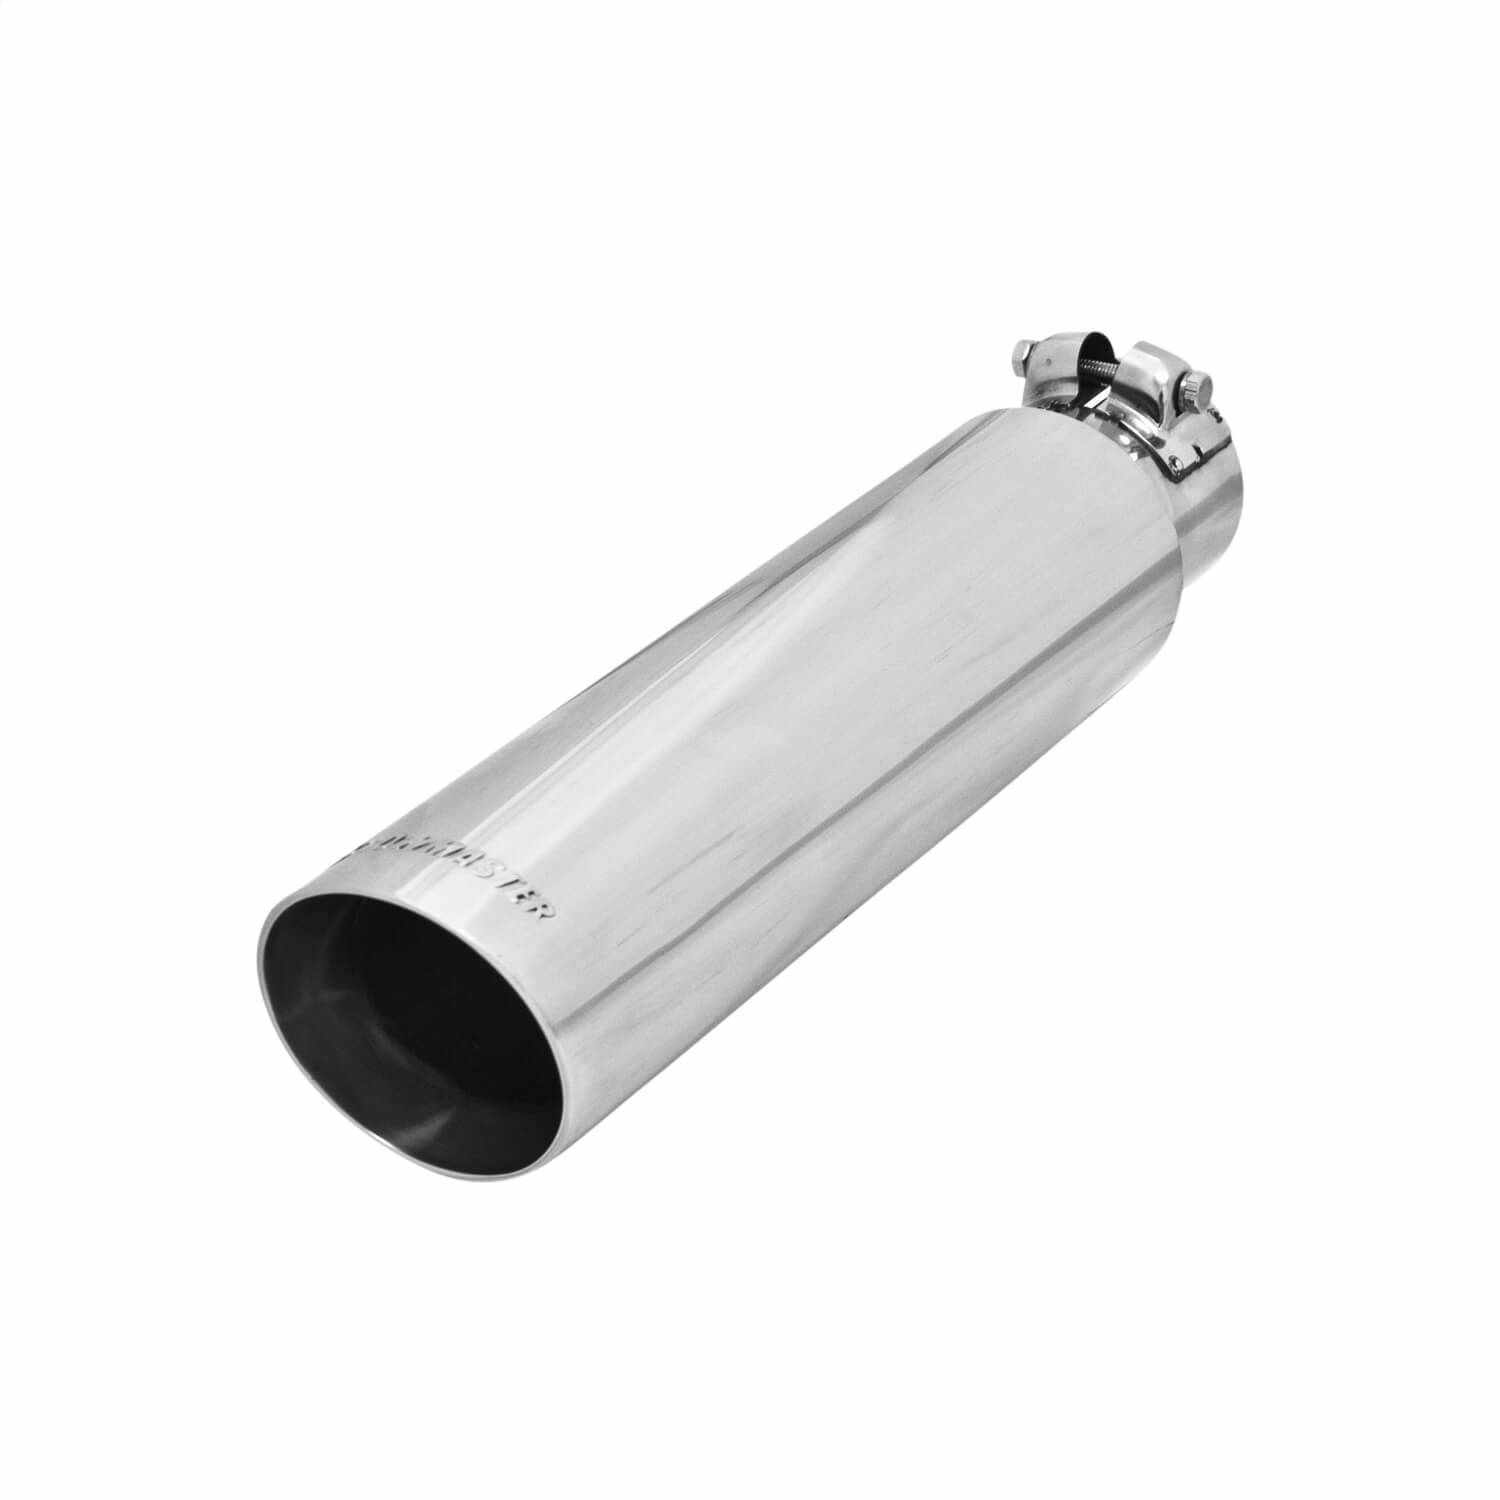 Flowmaster 15372 Stainless Steel Exhaust Tip